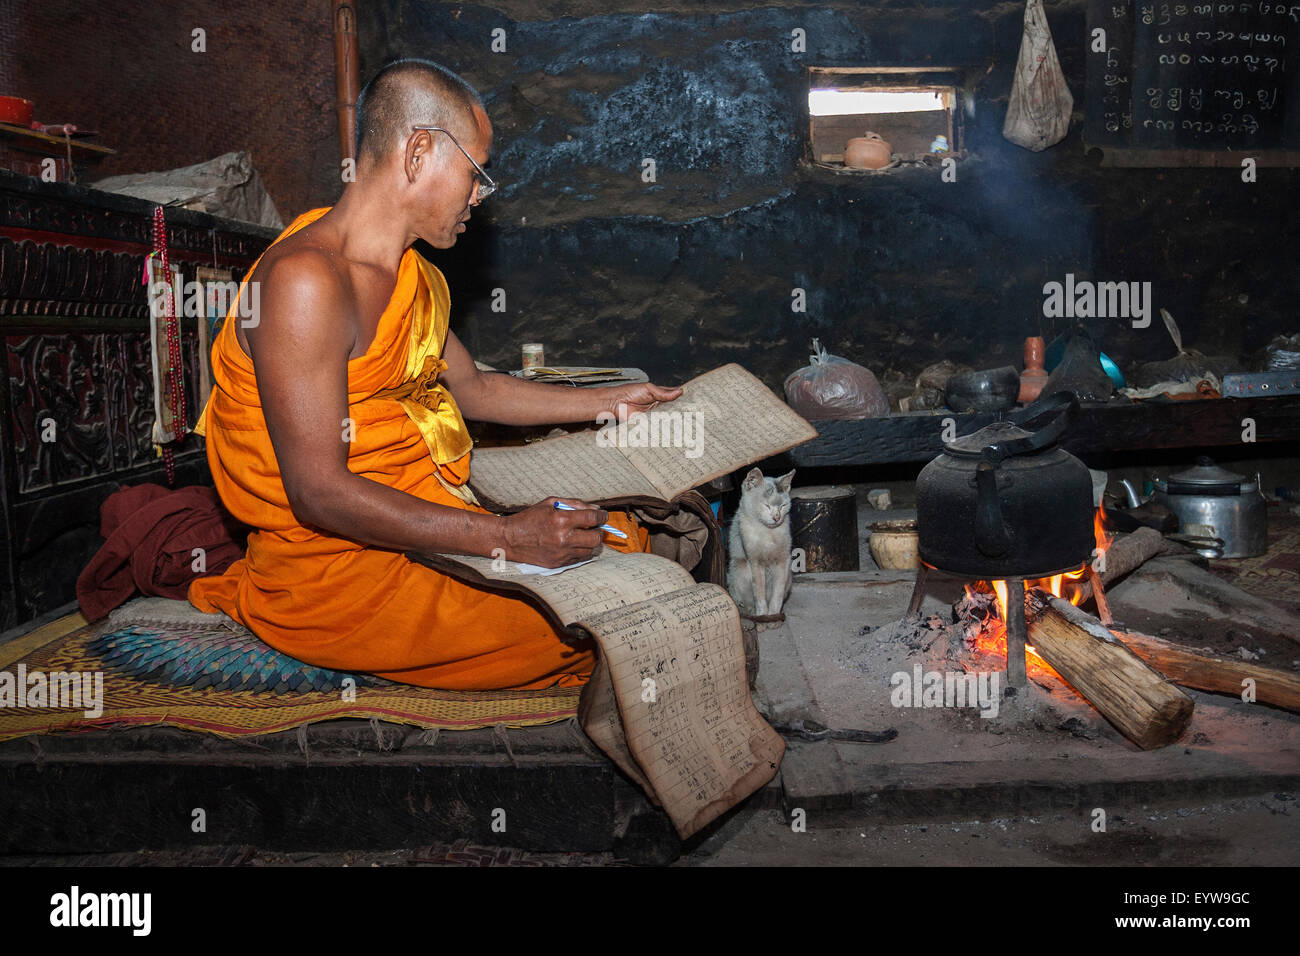 Buddhist monk, abbot, reading scripts, Wan Nyet Buddhist monastery, near Kyaing Tong, Golden Triangle, Myanmar - Stock Image